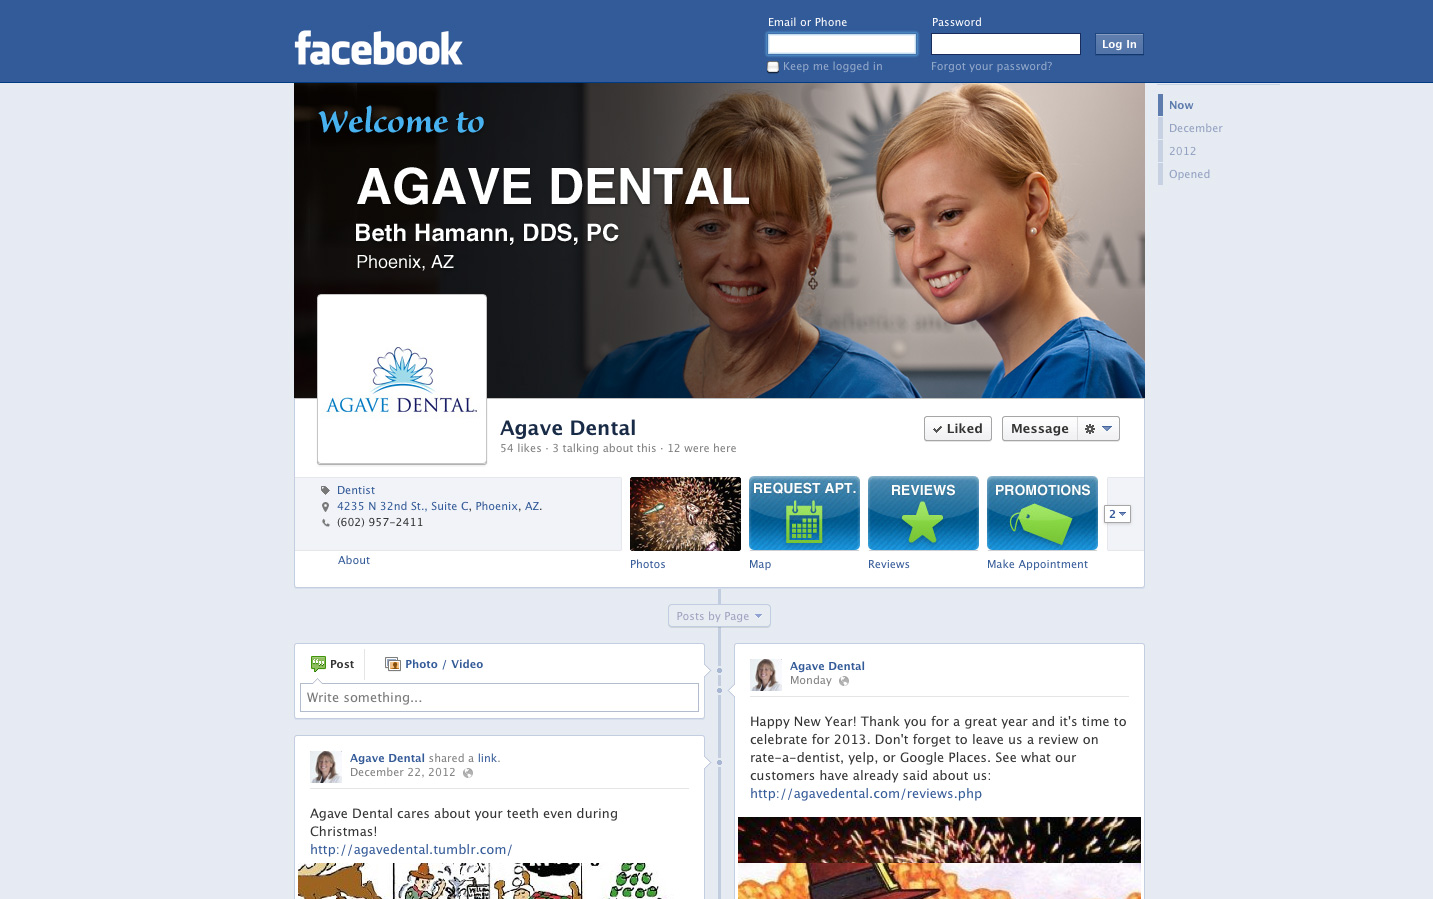 Agave Dental Facebook